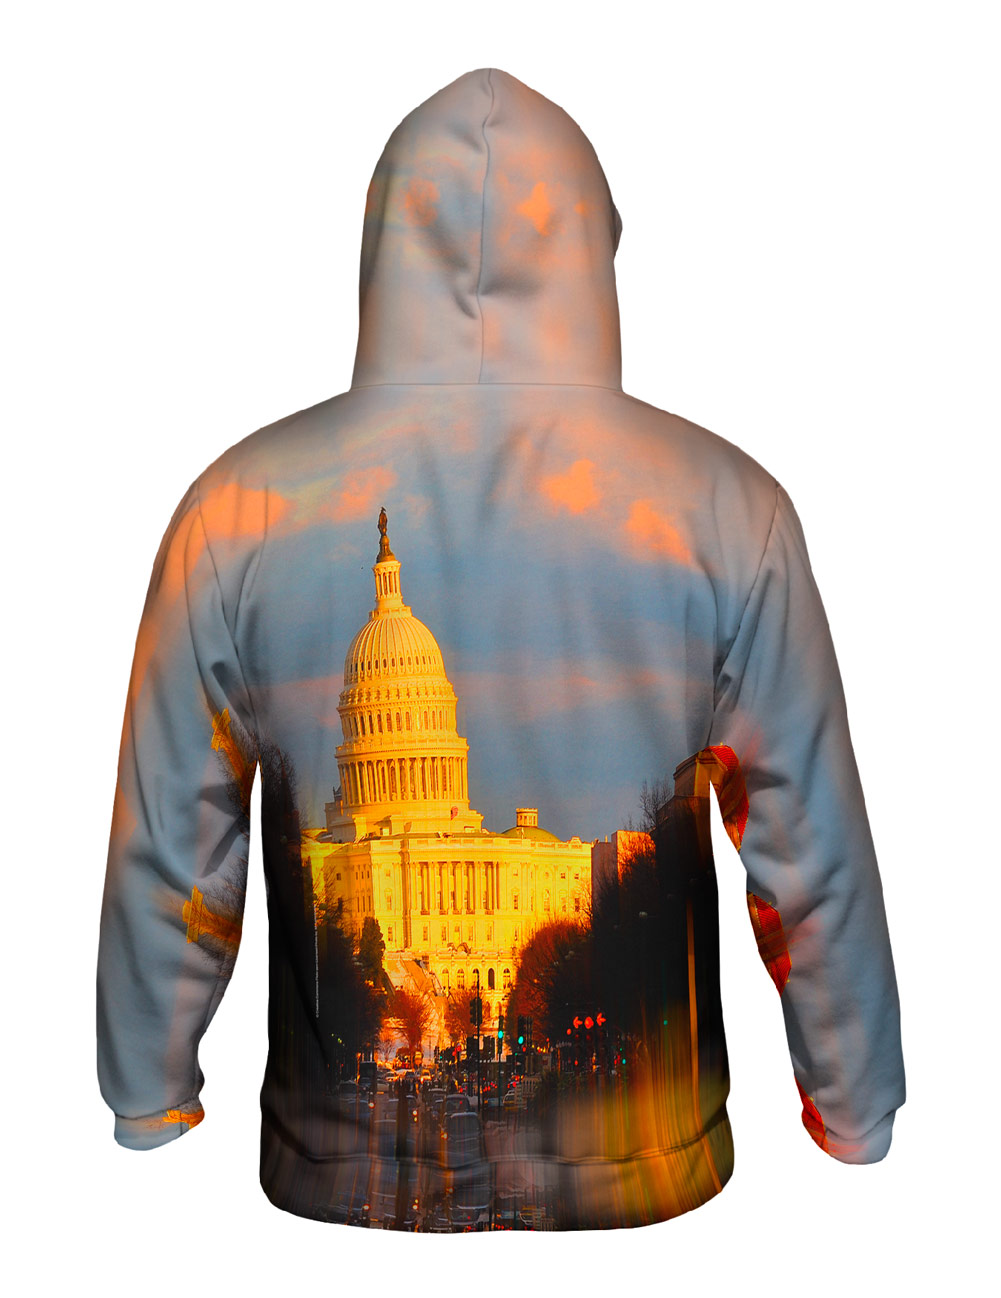 Yizzam- Us Capital Washington Dc Glow - New Mens Hoodie Sweater XS S M L XL 2XL